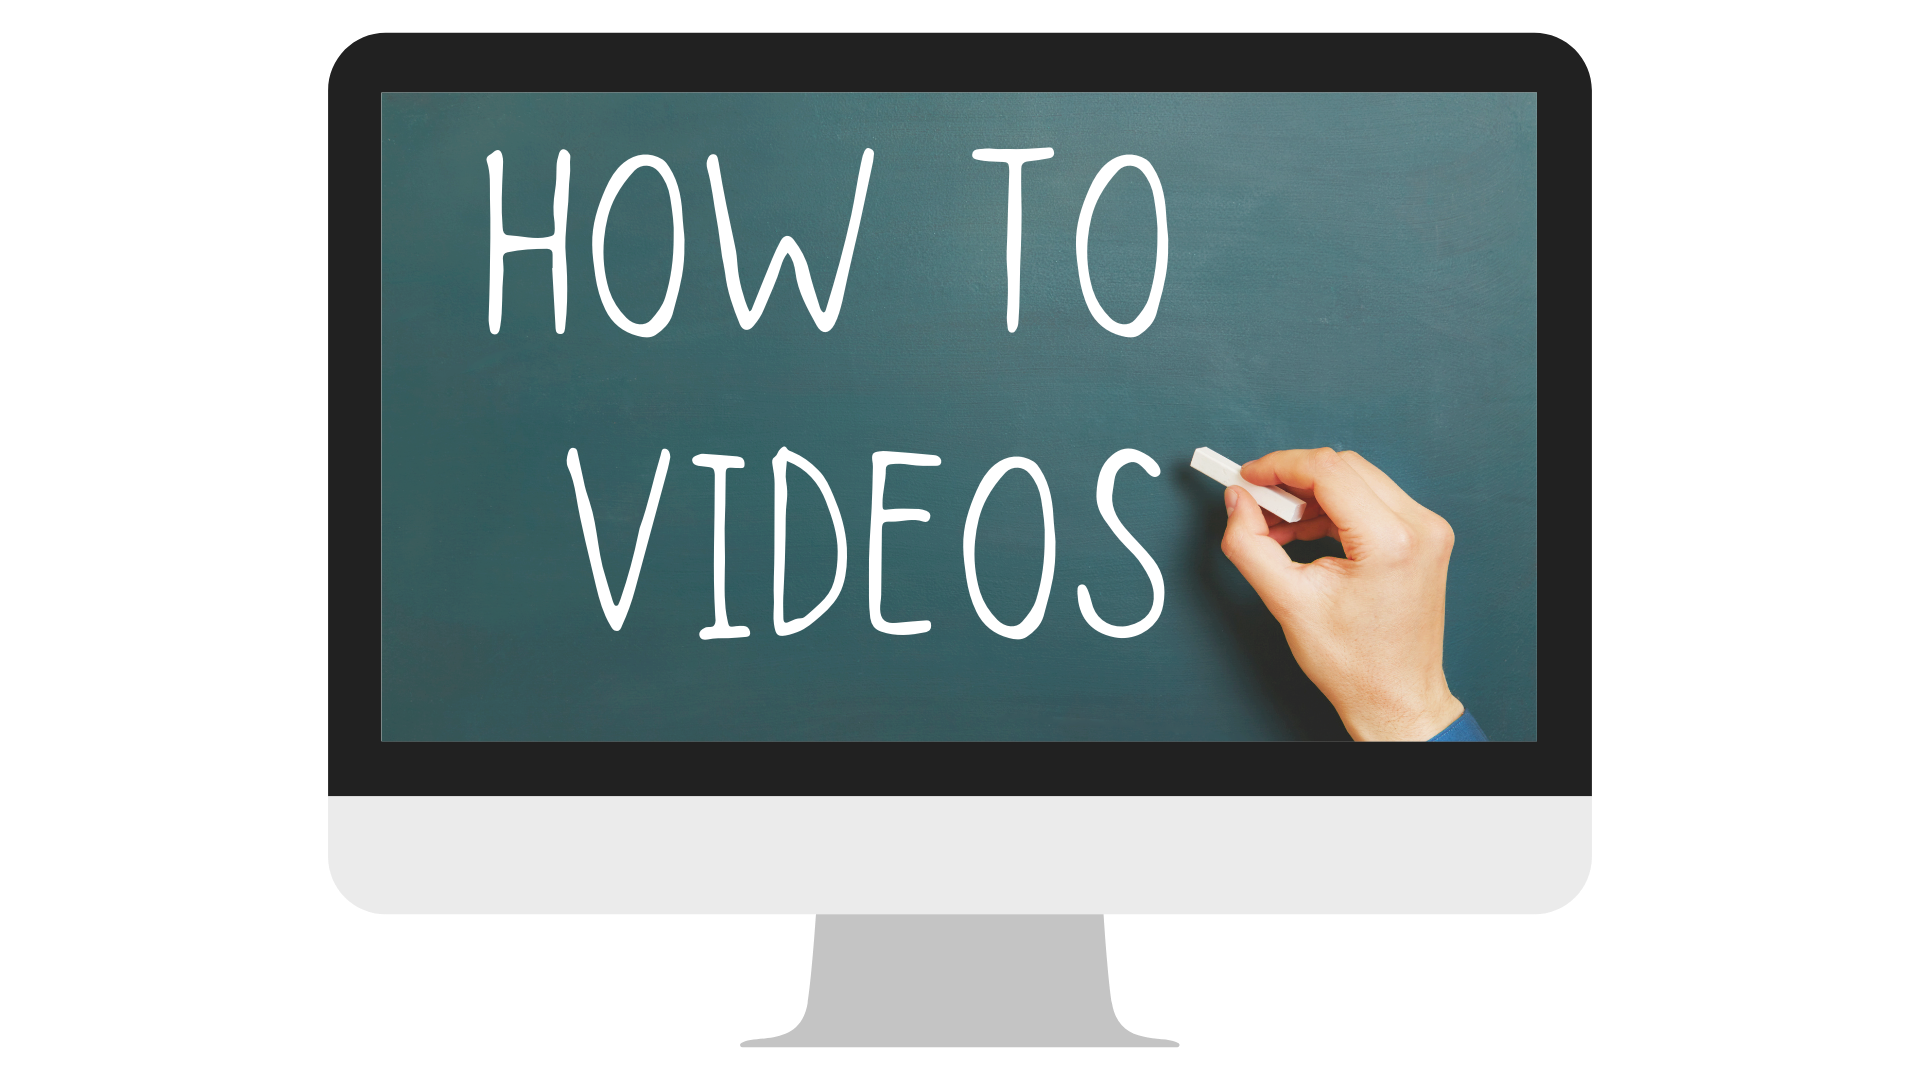 how to videos on a image of a computer screen